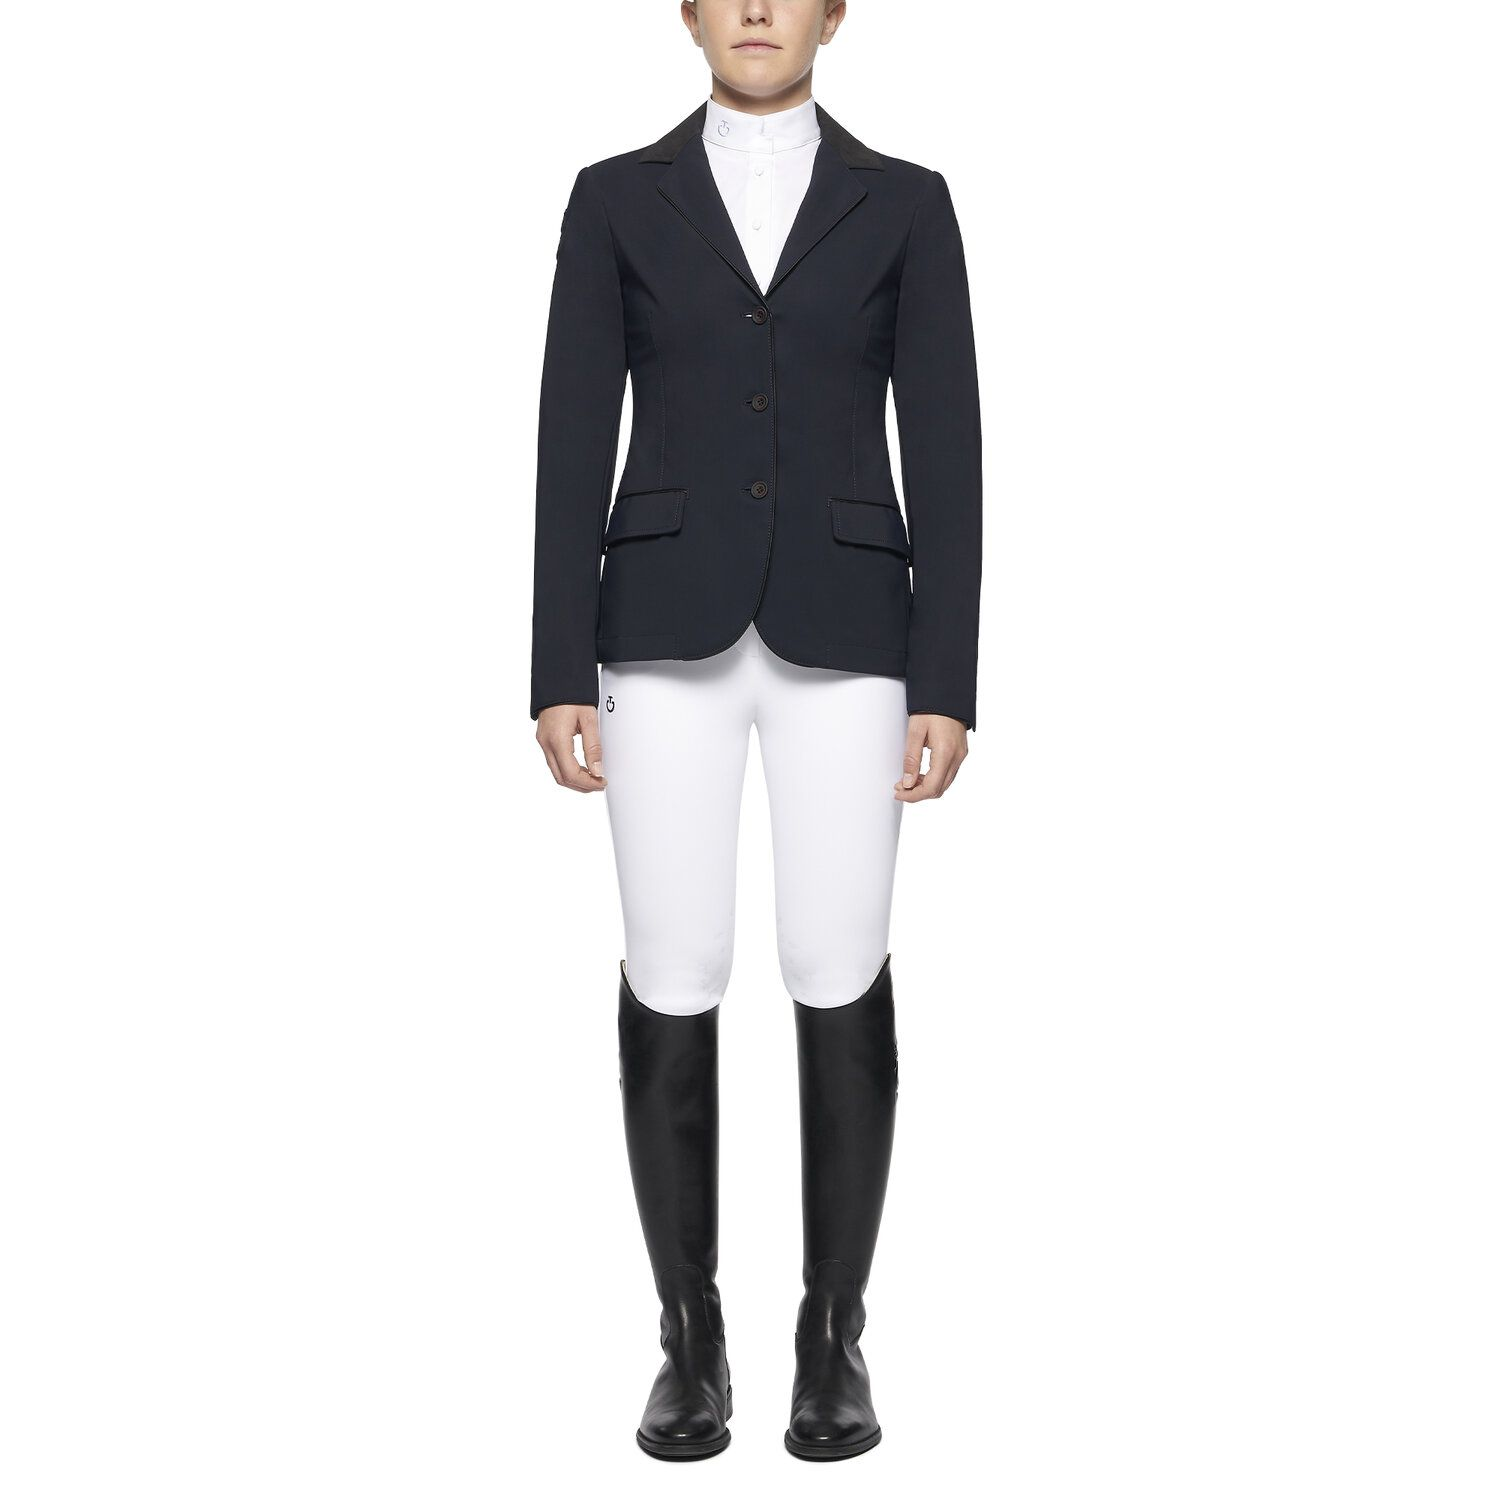 Girl's competition riding jacket.